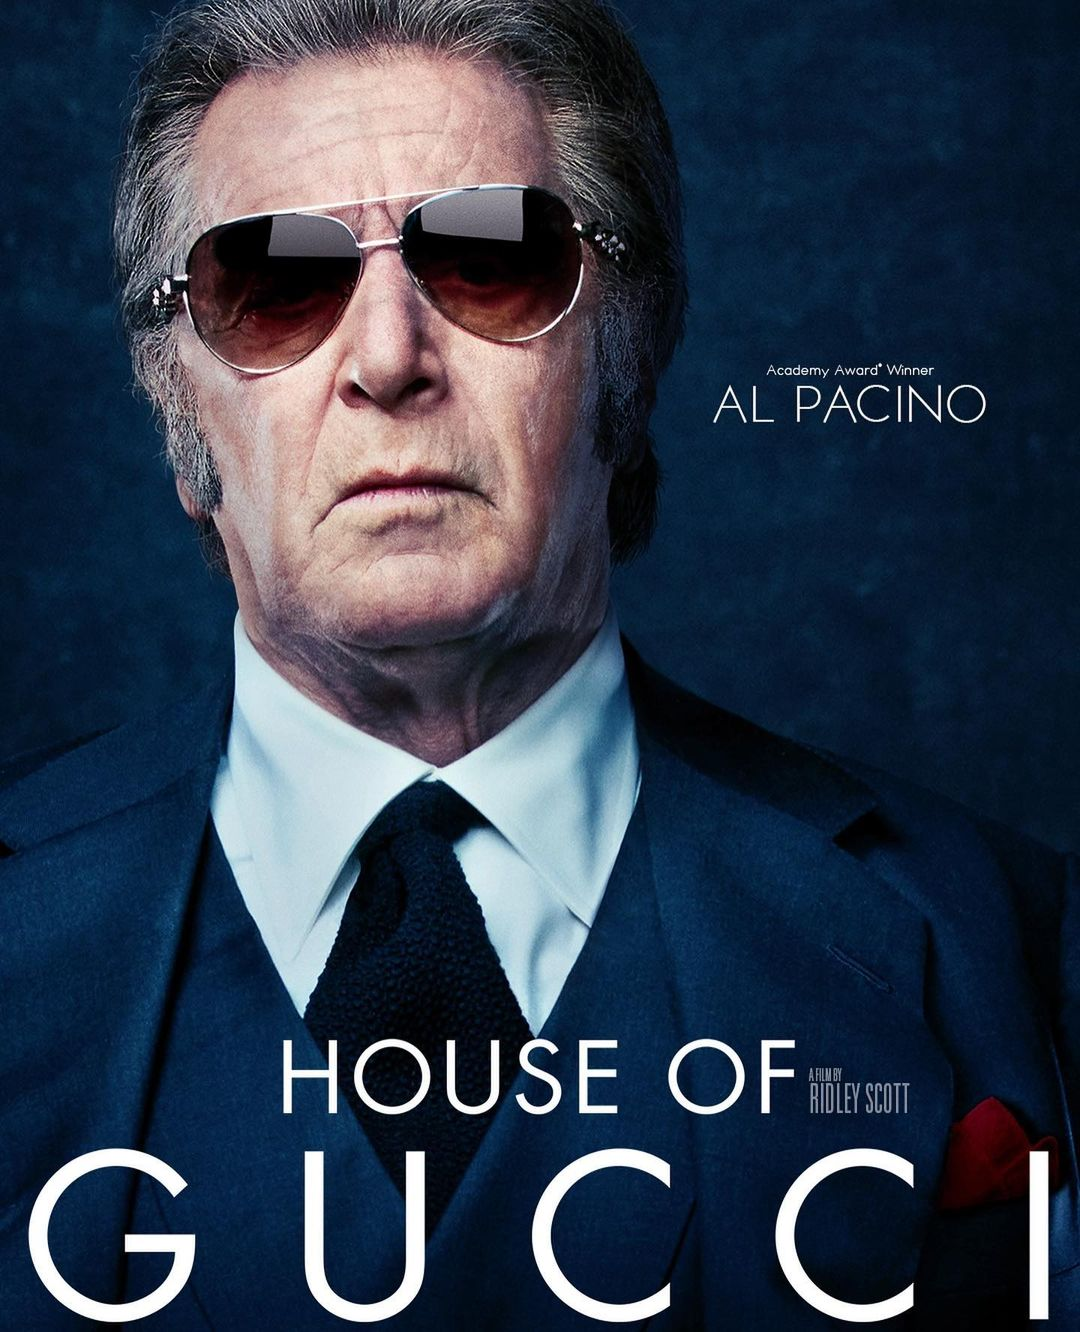 Al Pacino in House of Gucci - neomag.